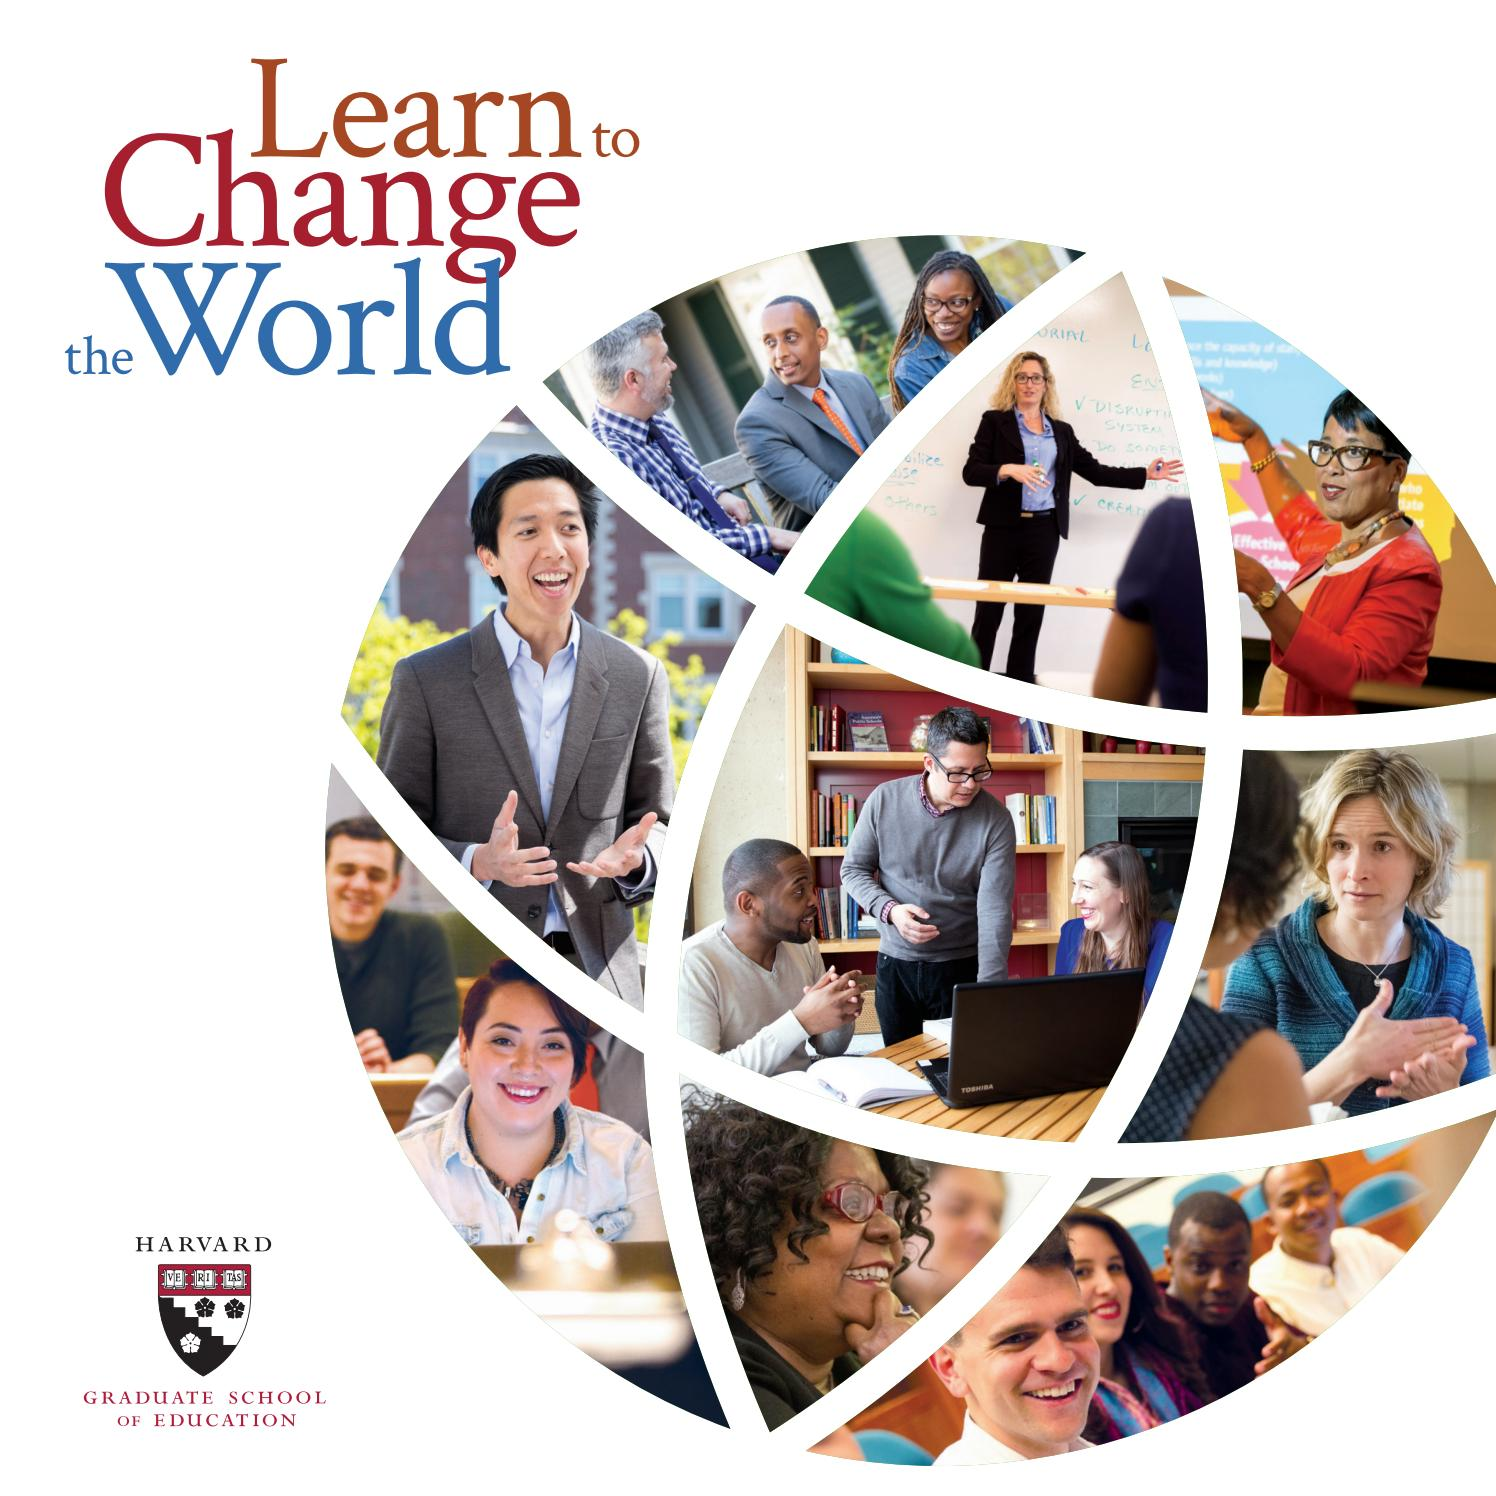 HGSE at a Glance Brochure 2018 by Harvard Graduate School of